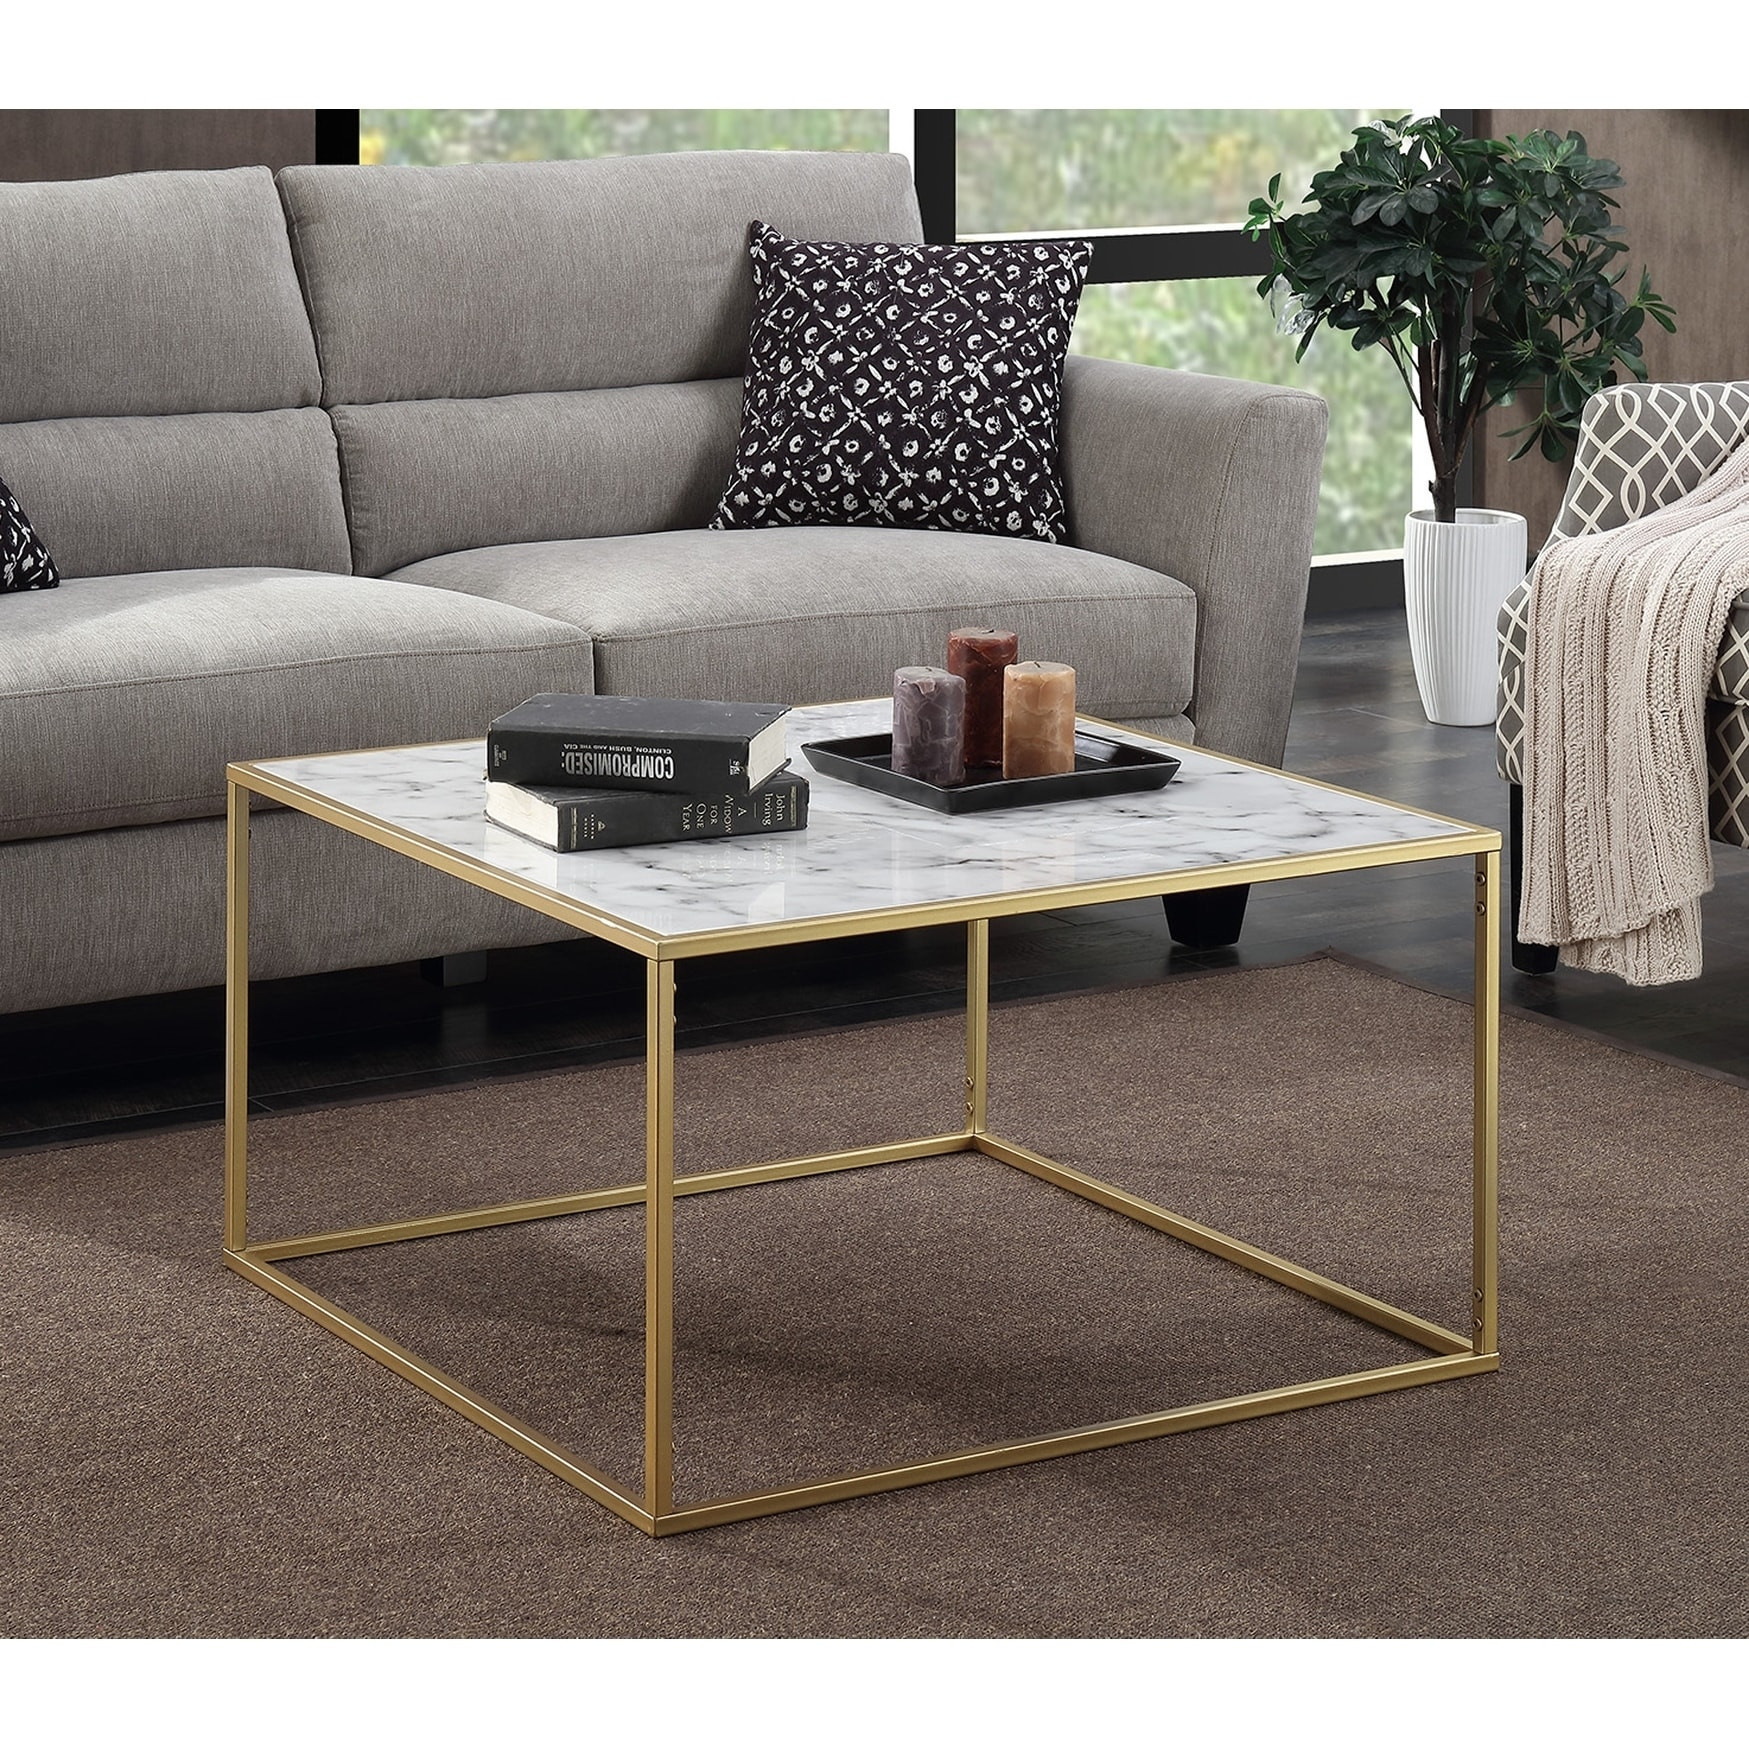 Convenience Concepts Gold Coast Faux Marble Coffee Table   Free Shipping  Today   Overstock.com   21121591